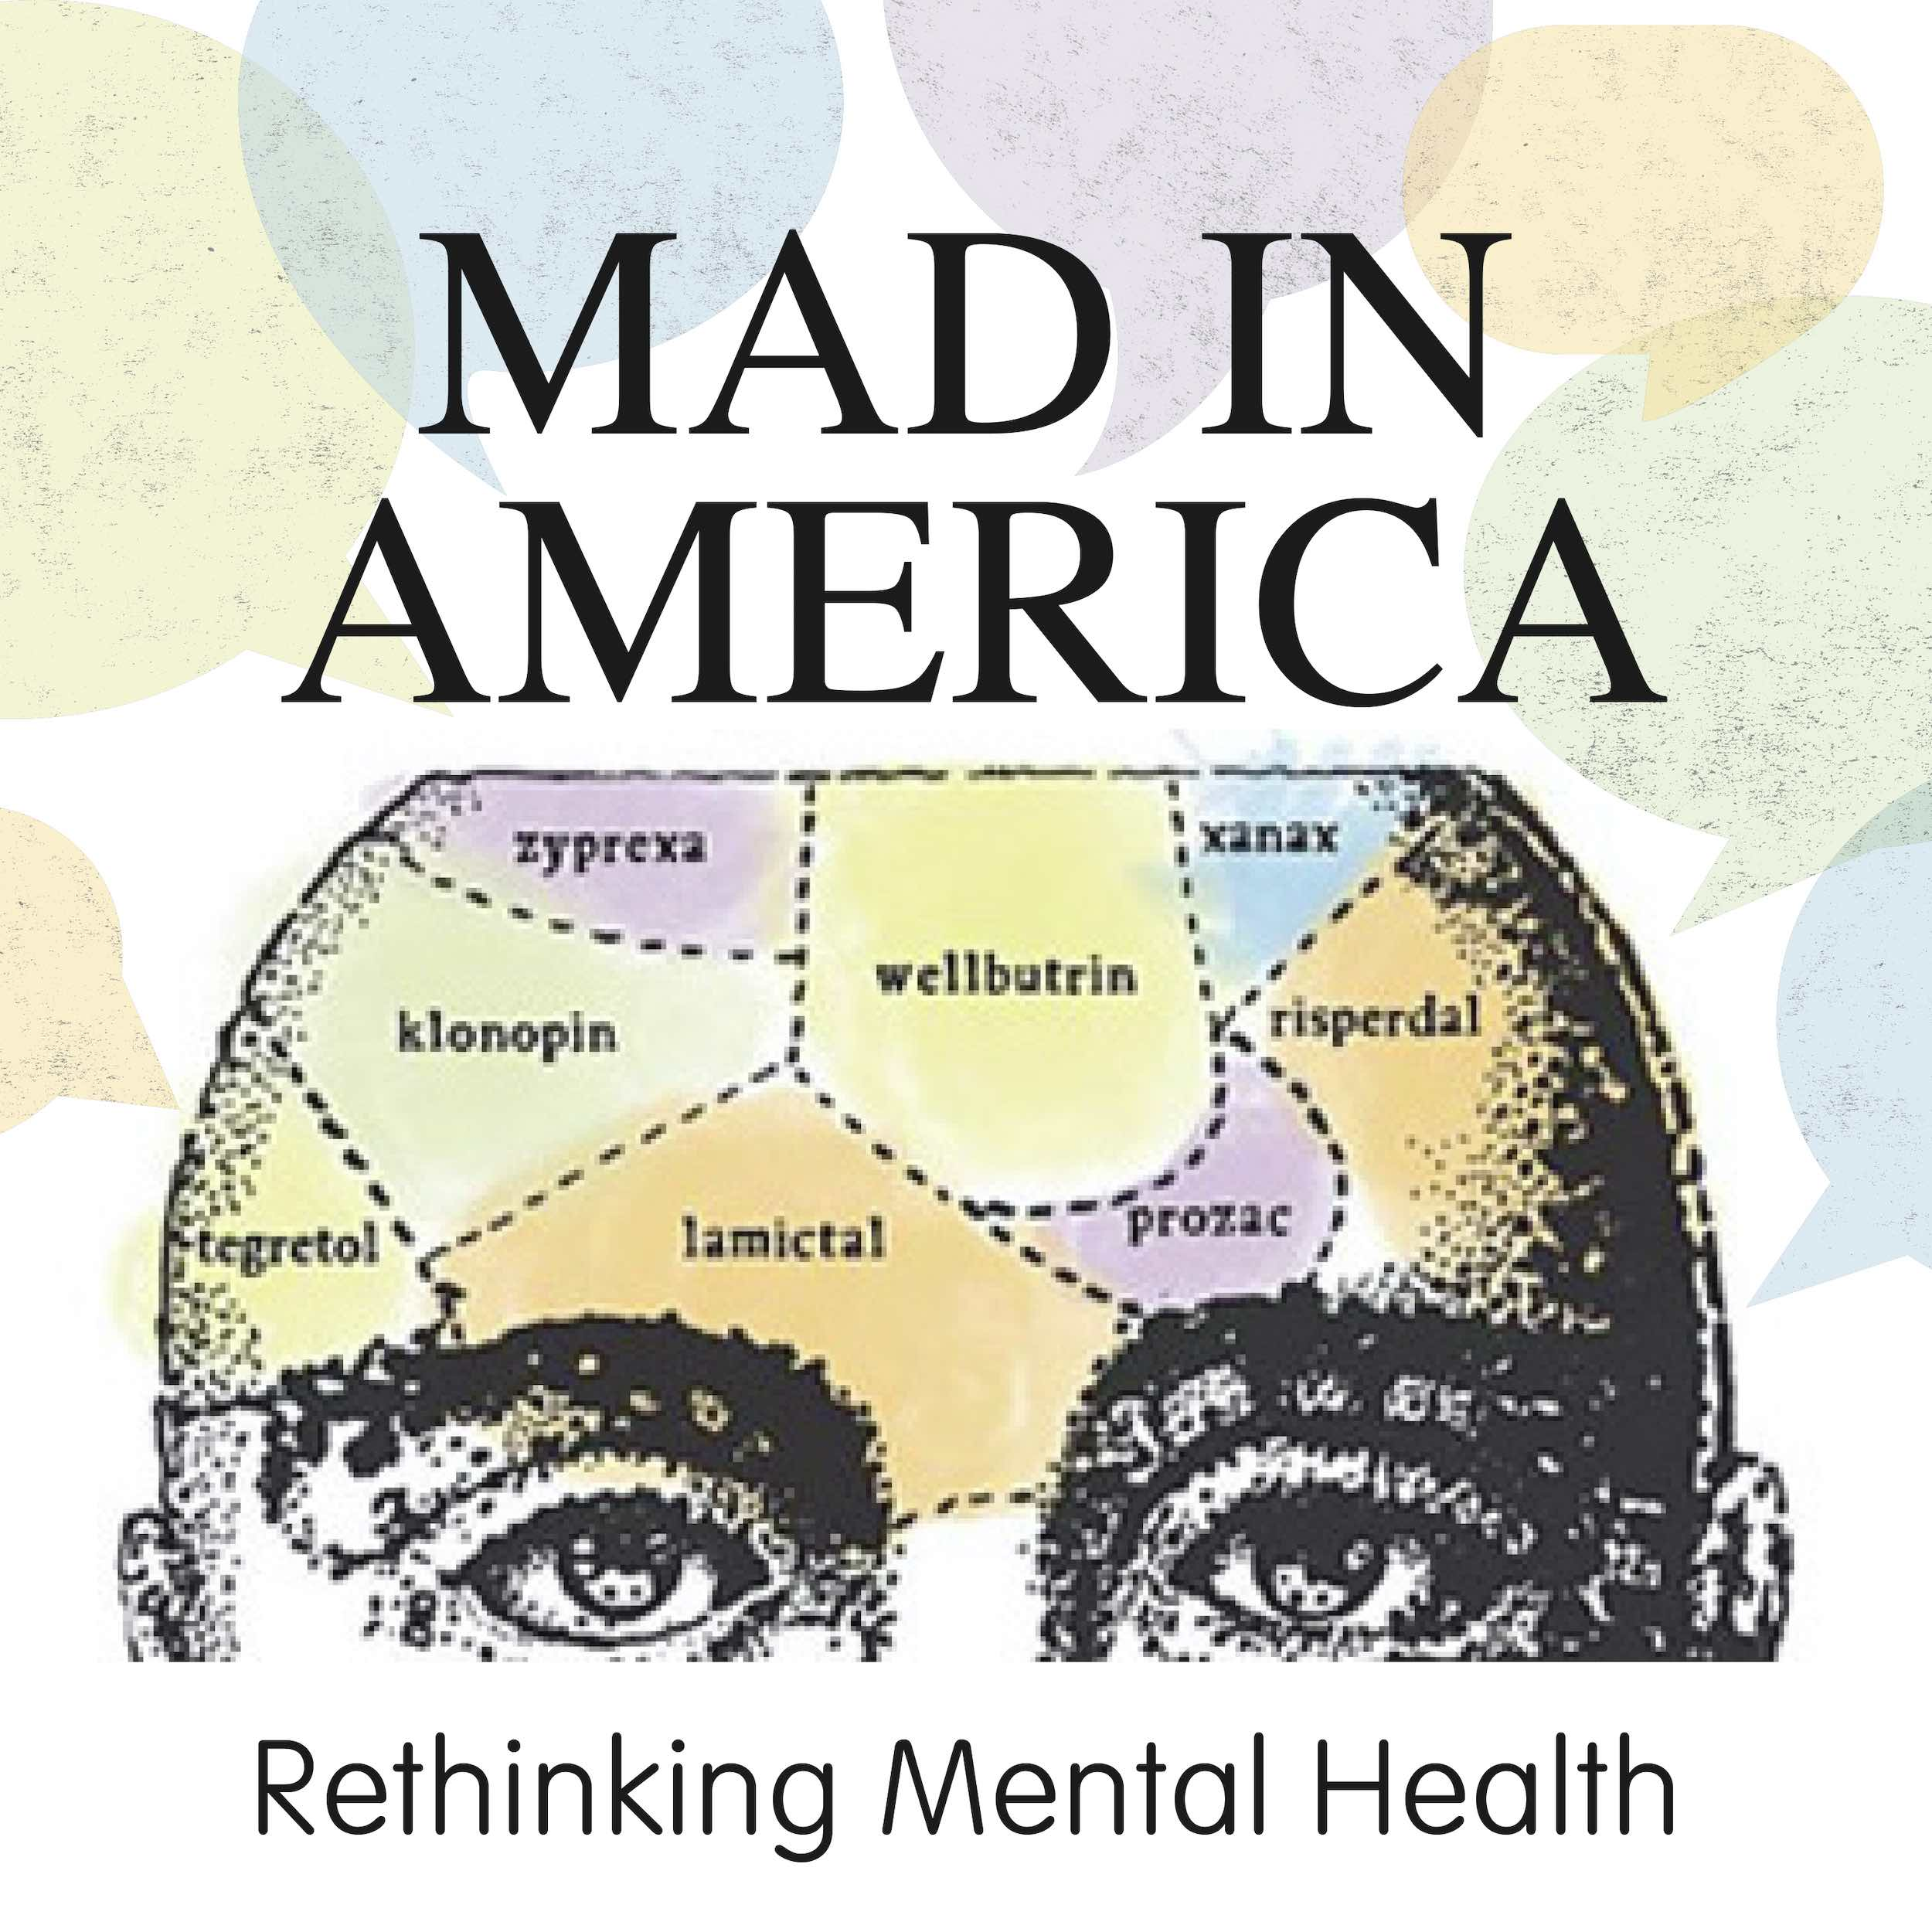 Mad in America: Rethinking Mental Health - Trailer - Online Town Hall - Psychiatric Drug Withdrawal